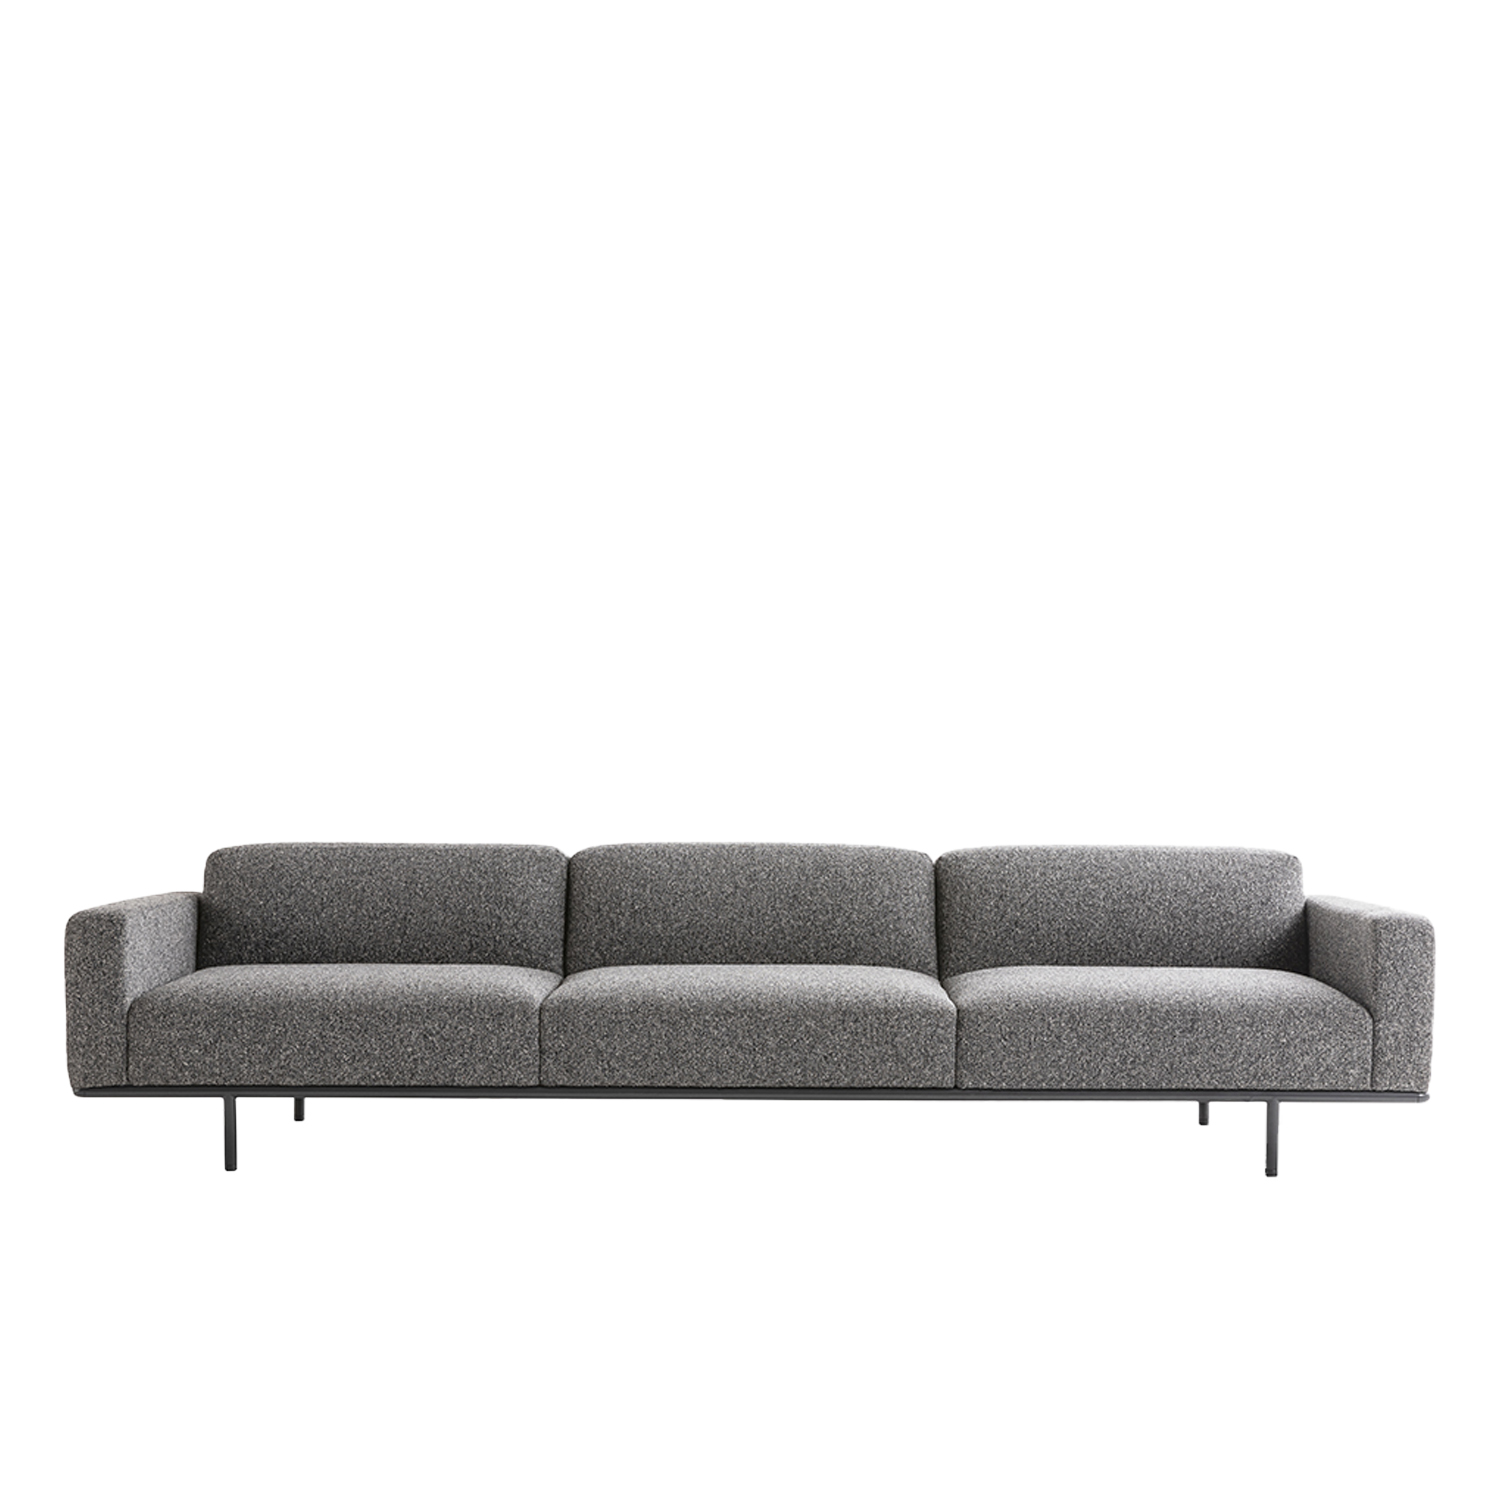 Cap Ferrat Small Three-Seater Sofa with Armrests - Cap Ferrat sofa by Carlo Colombo is the emblem of a new collection marked by a rigorous and virtually atemporal design, capable of maintaining an airy appearance, even in large-scale dimensions.  Cap Ferrat sofas, like the homonymous armchairs, are made of multi-density polyurethane and fiber, a solution that guarantees noteworthy comfort. The multiple finishes of the slender metallic base and the ample upholstery selection (which includes fabric, leather and eco leather) allow for a highly customized collection that is equally versatile in appearance and destination. The light and minimal design – though undisputedly solid and resistant – makes Cap Ferrat sofa the ideal choice for domestic as well as high-traffic Contract settings.  | Matter of Stuff